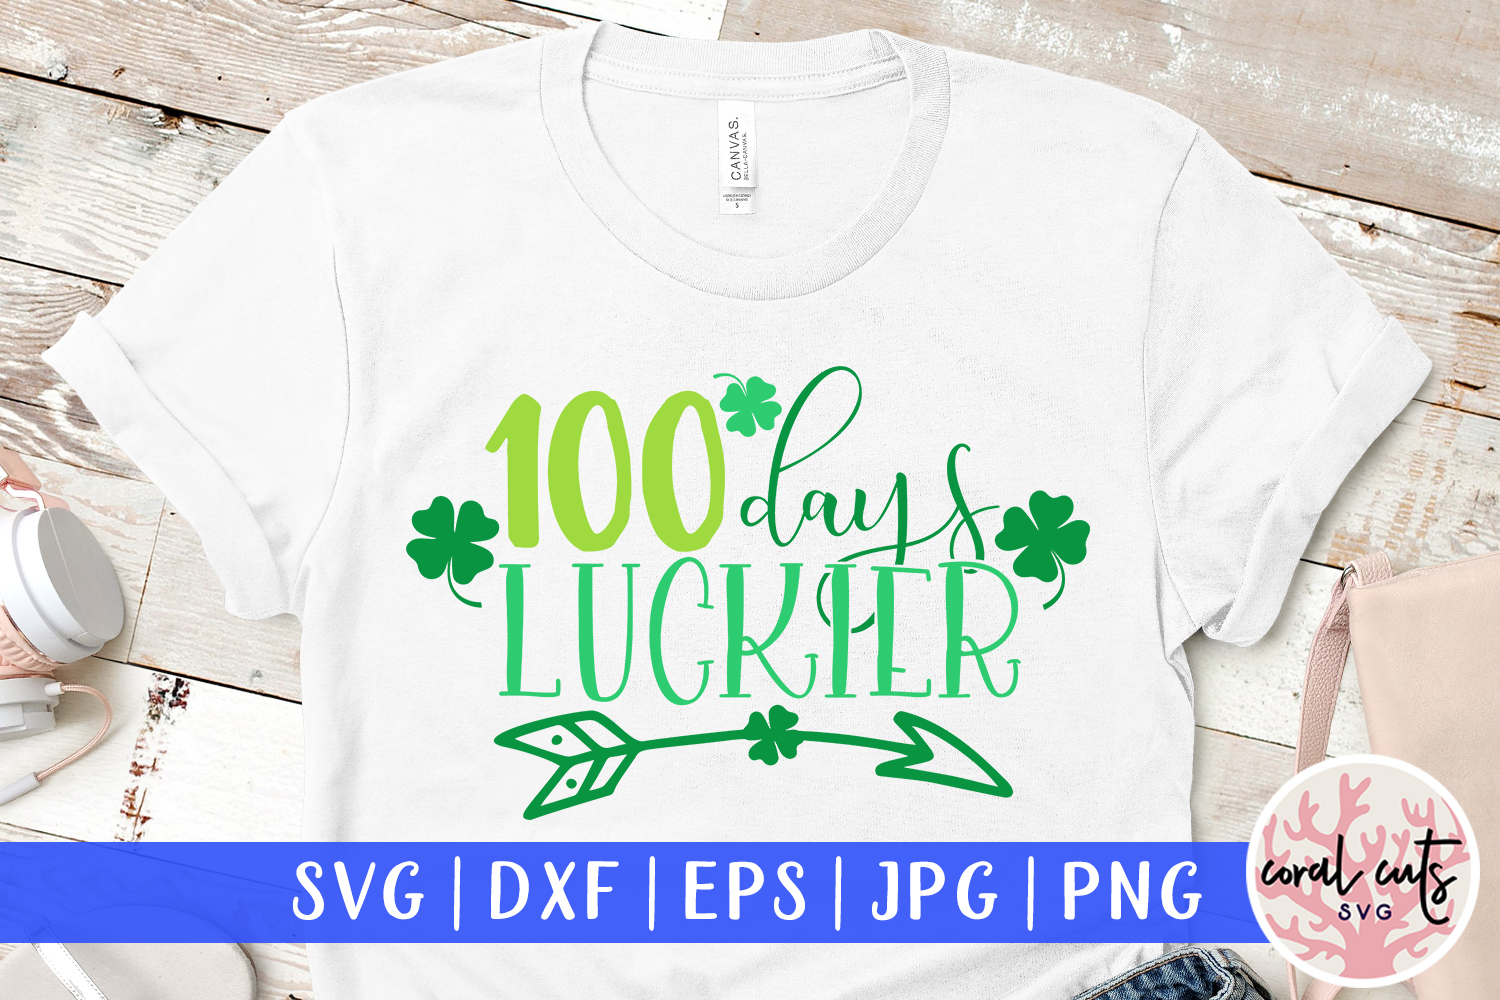 100 days luckier - St. Patrick's Day SVG EPS DXF PNG example image 1